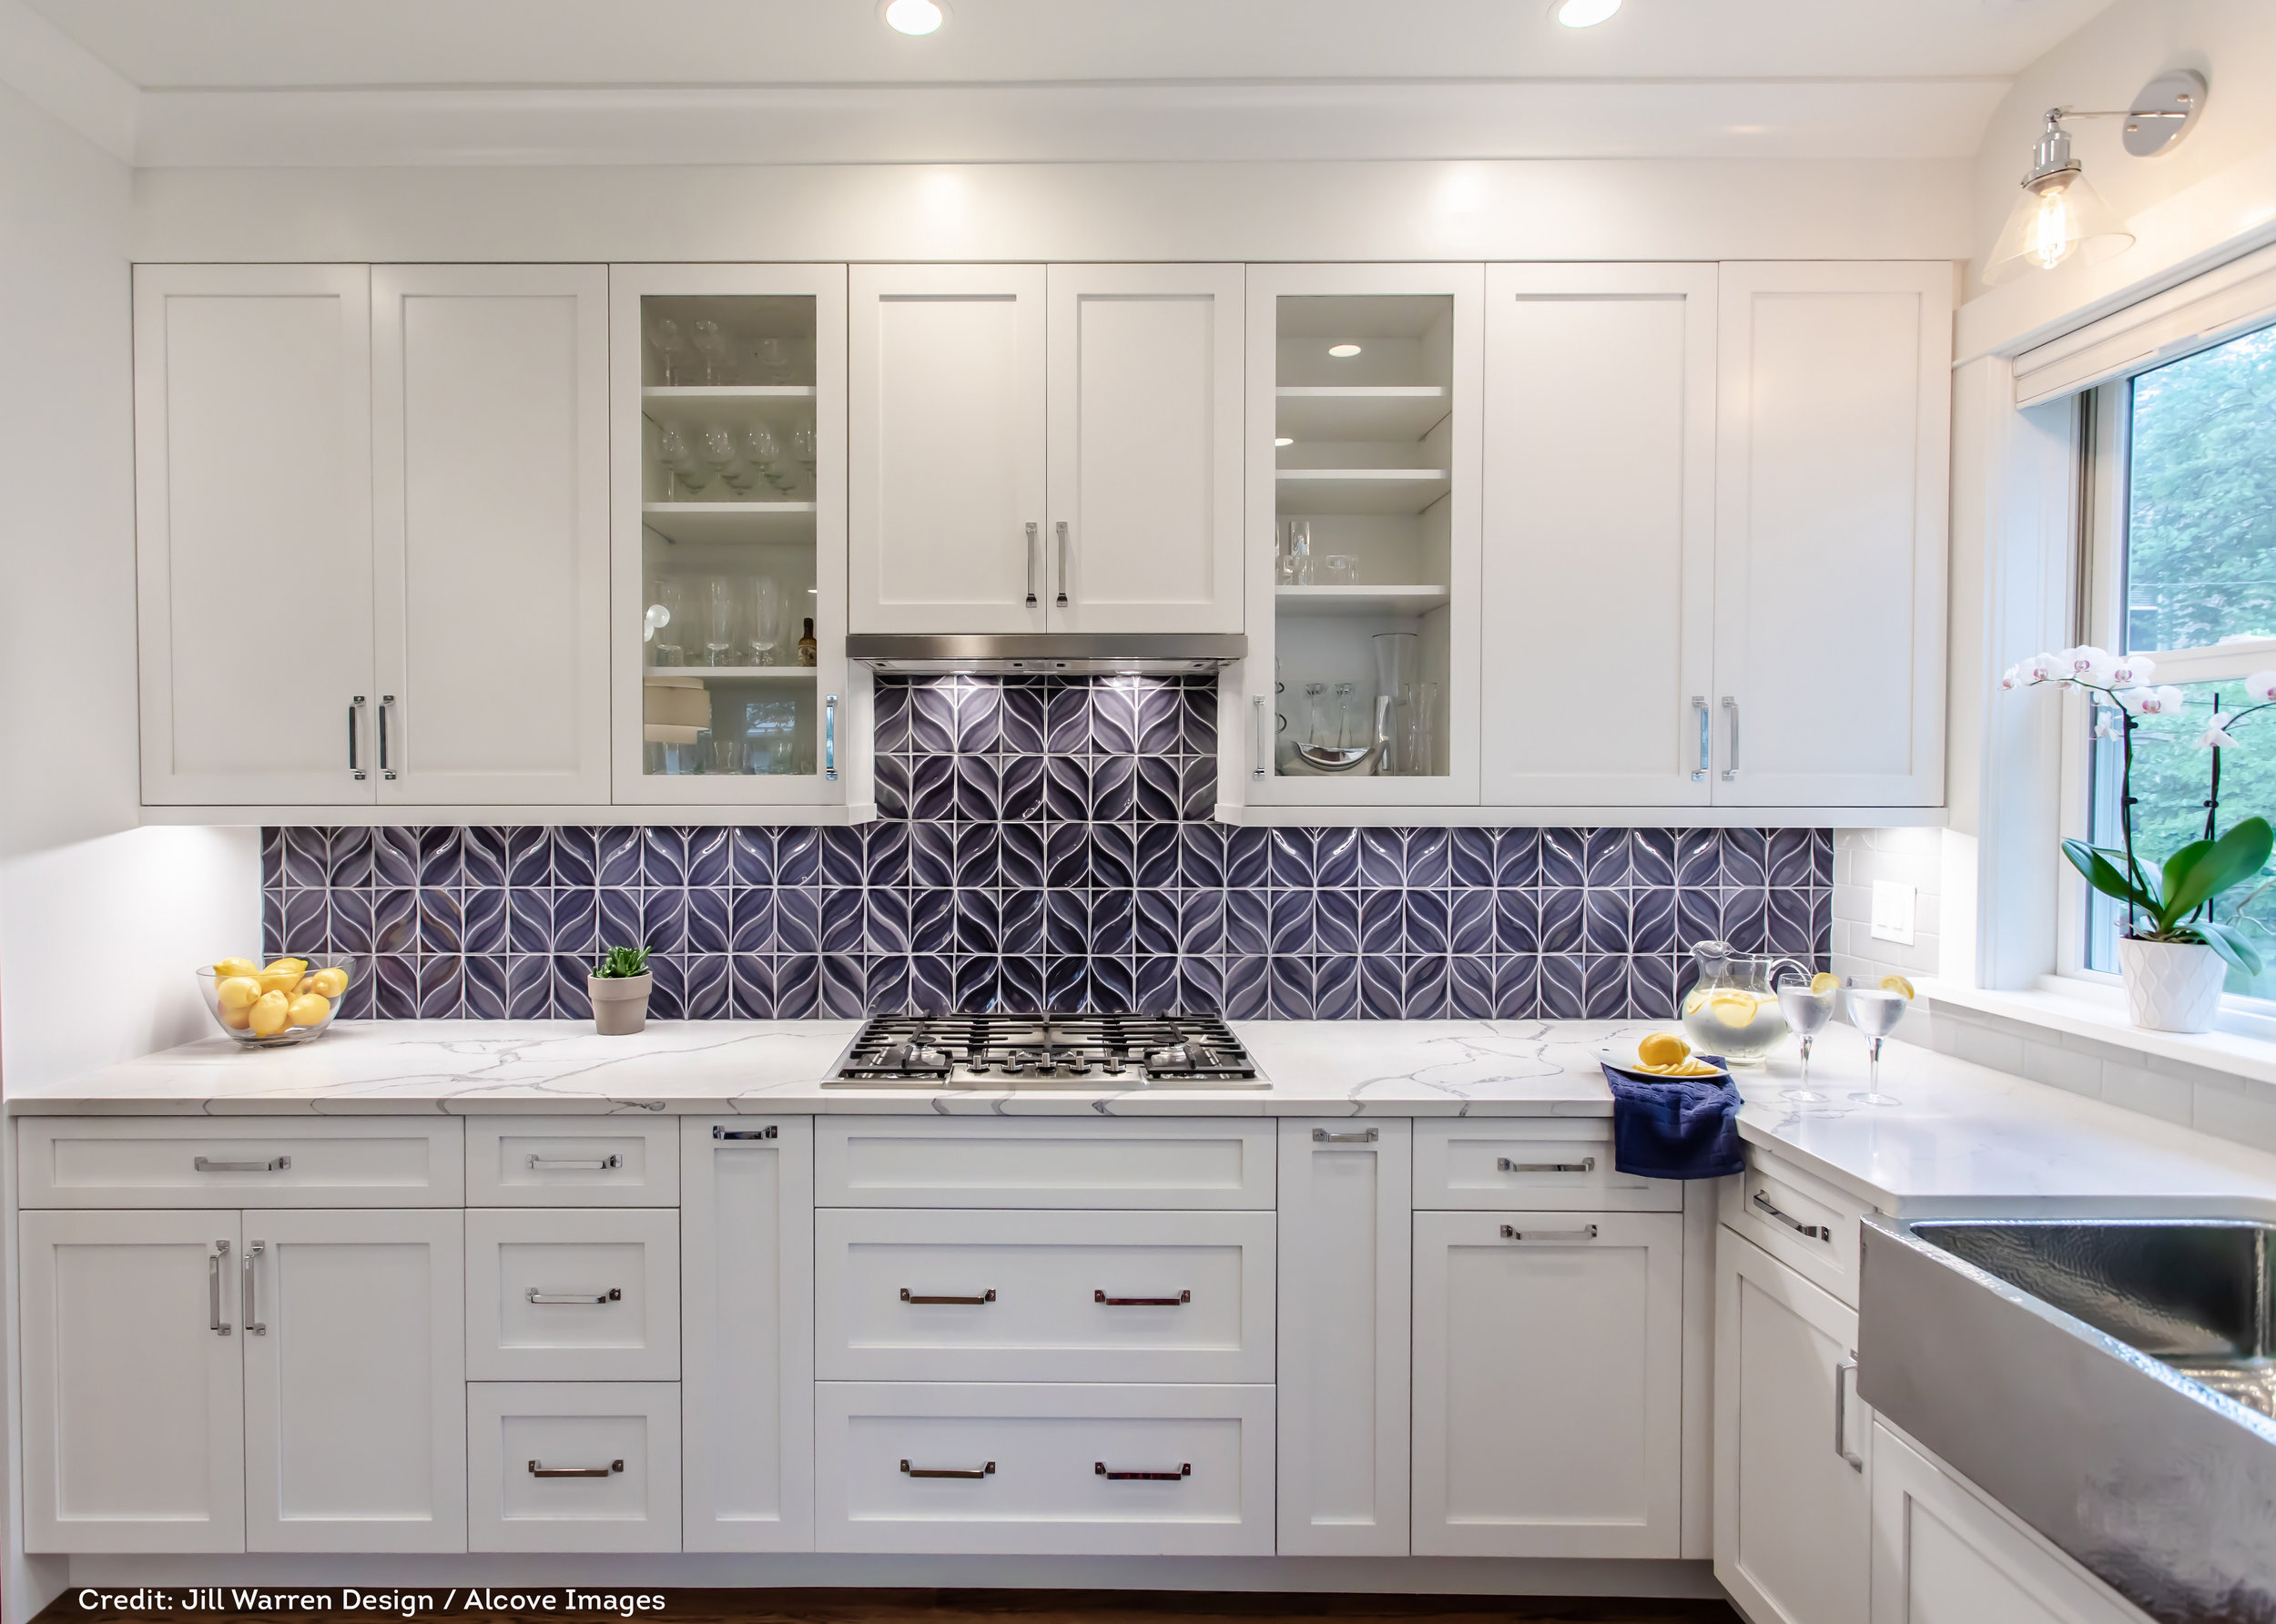 SO - Sonoma - Stellar Dahlia Fontainebleau - Ceramic - Backsplash.jpg